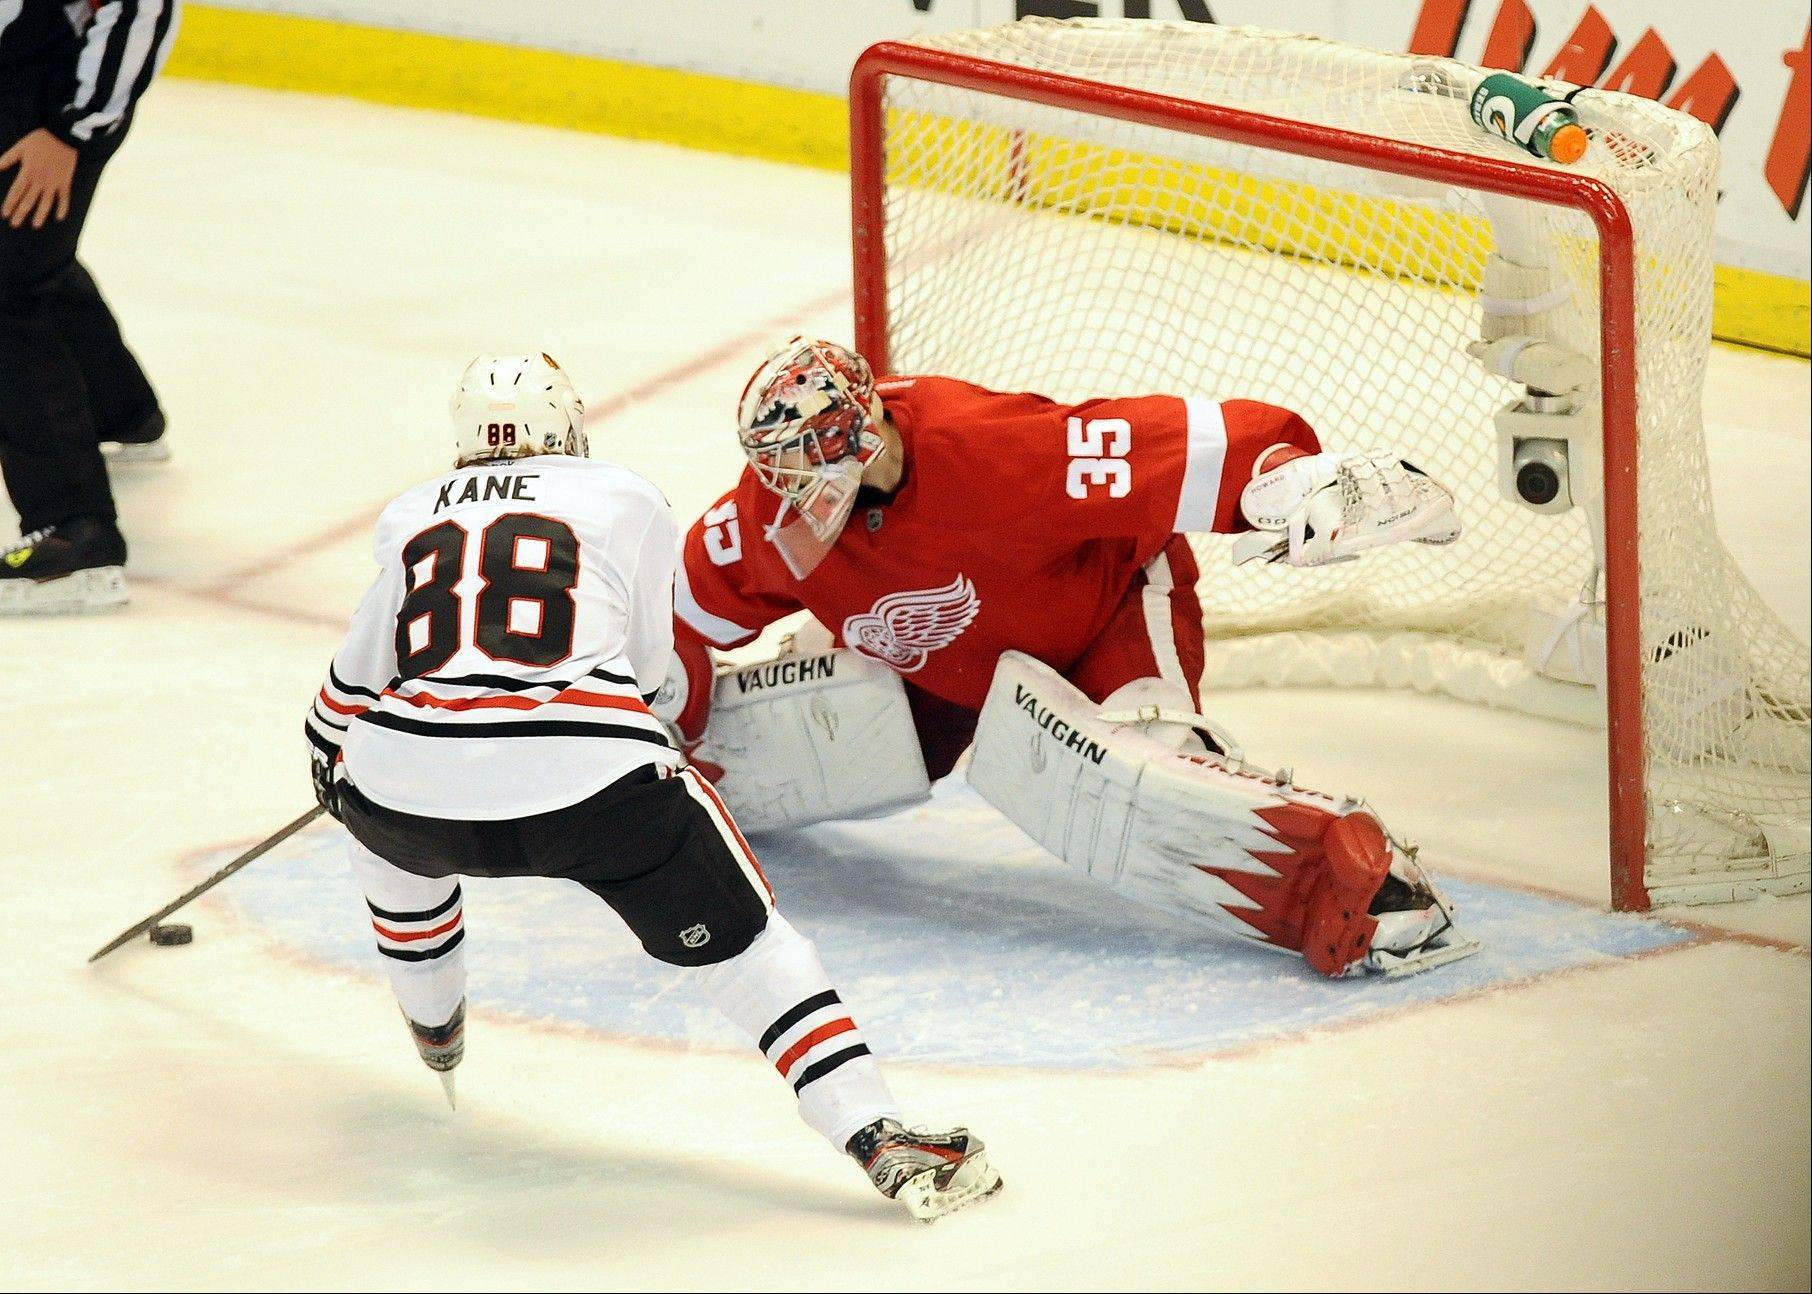 Blackhawks center Patrick Kane gets Detroit Red Wings goalie Jimmy Howard leaning to his right before putting the puck past him Saturday for the only goal in the shootout.